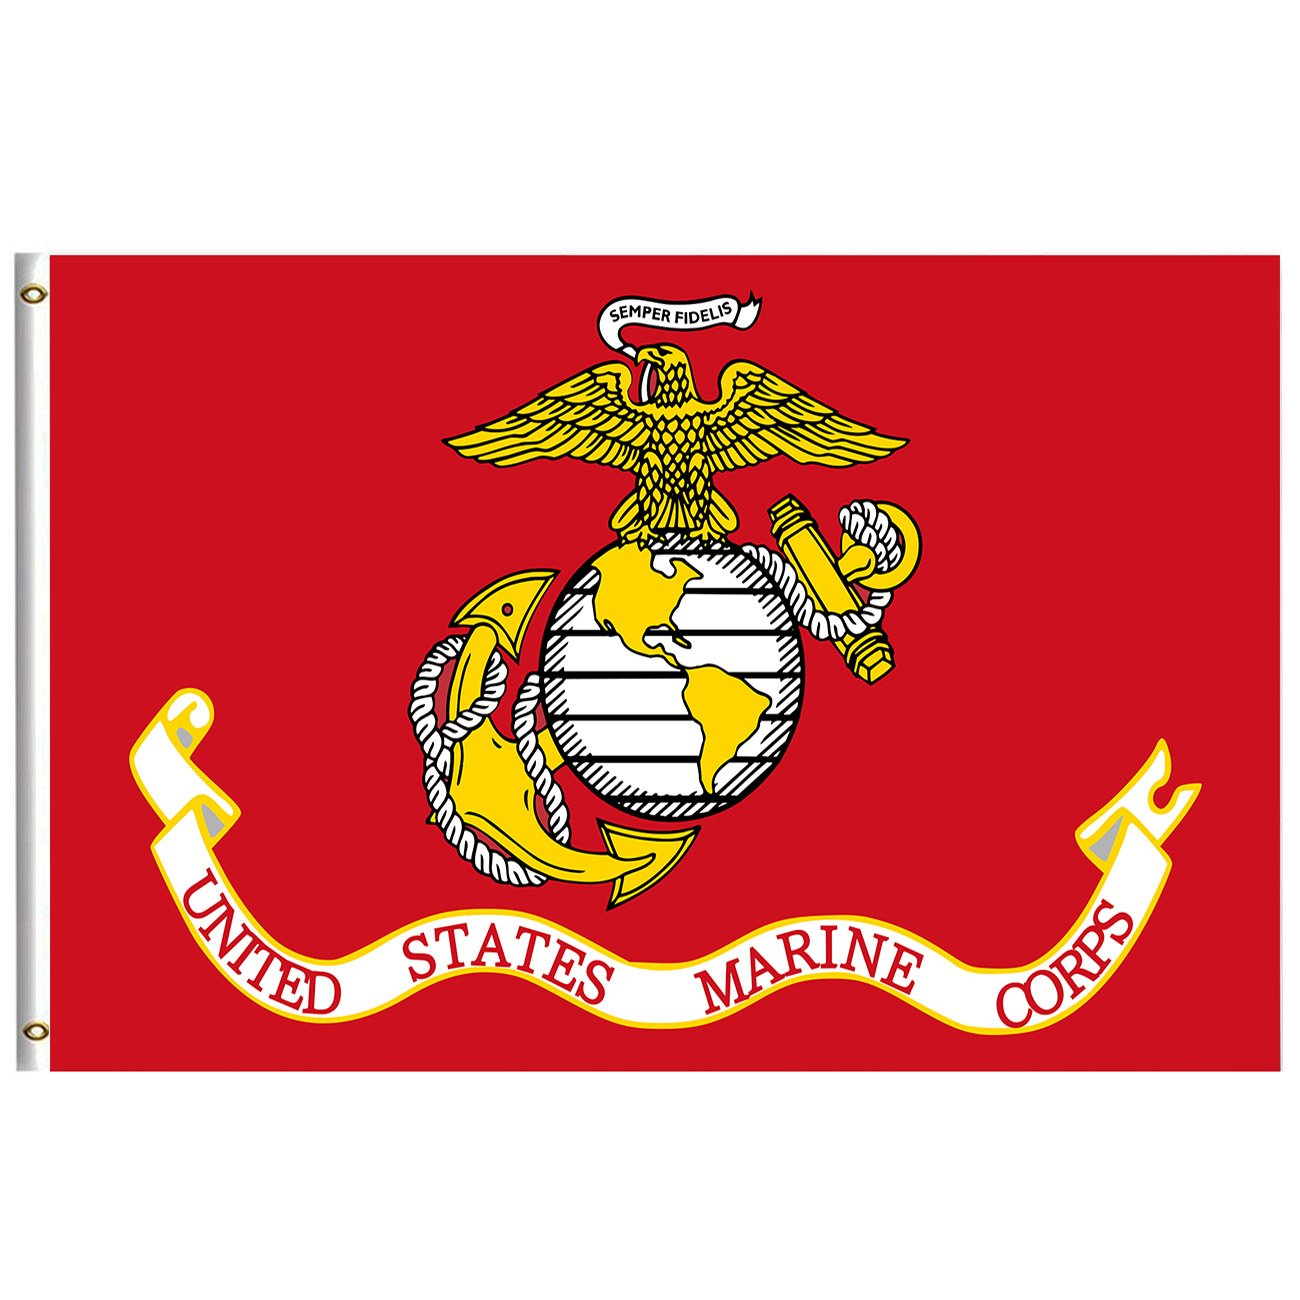 America Flag Marine Corps Military Armed Forces Flag 4x6 Feet with Brass Grommet Double Stitch Marine Corps Birthday November USA Banner Garden Flag House Breeze Decorations for Indoor Outdoor